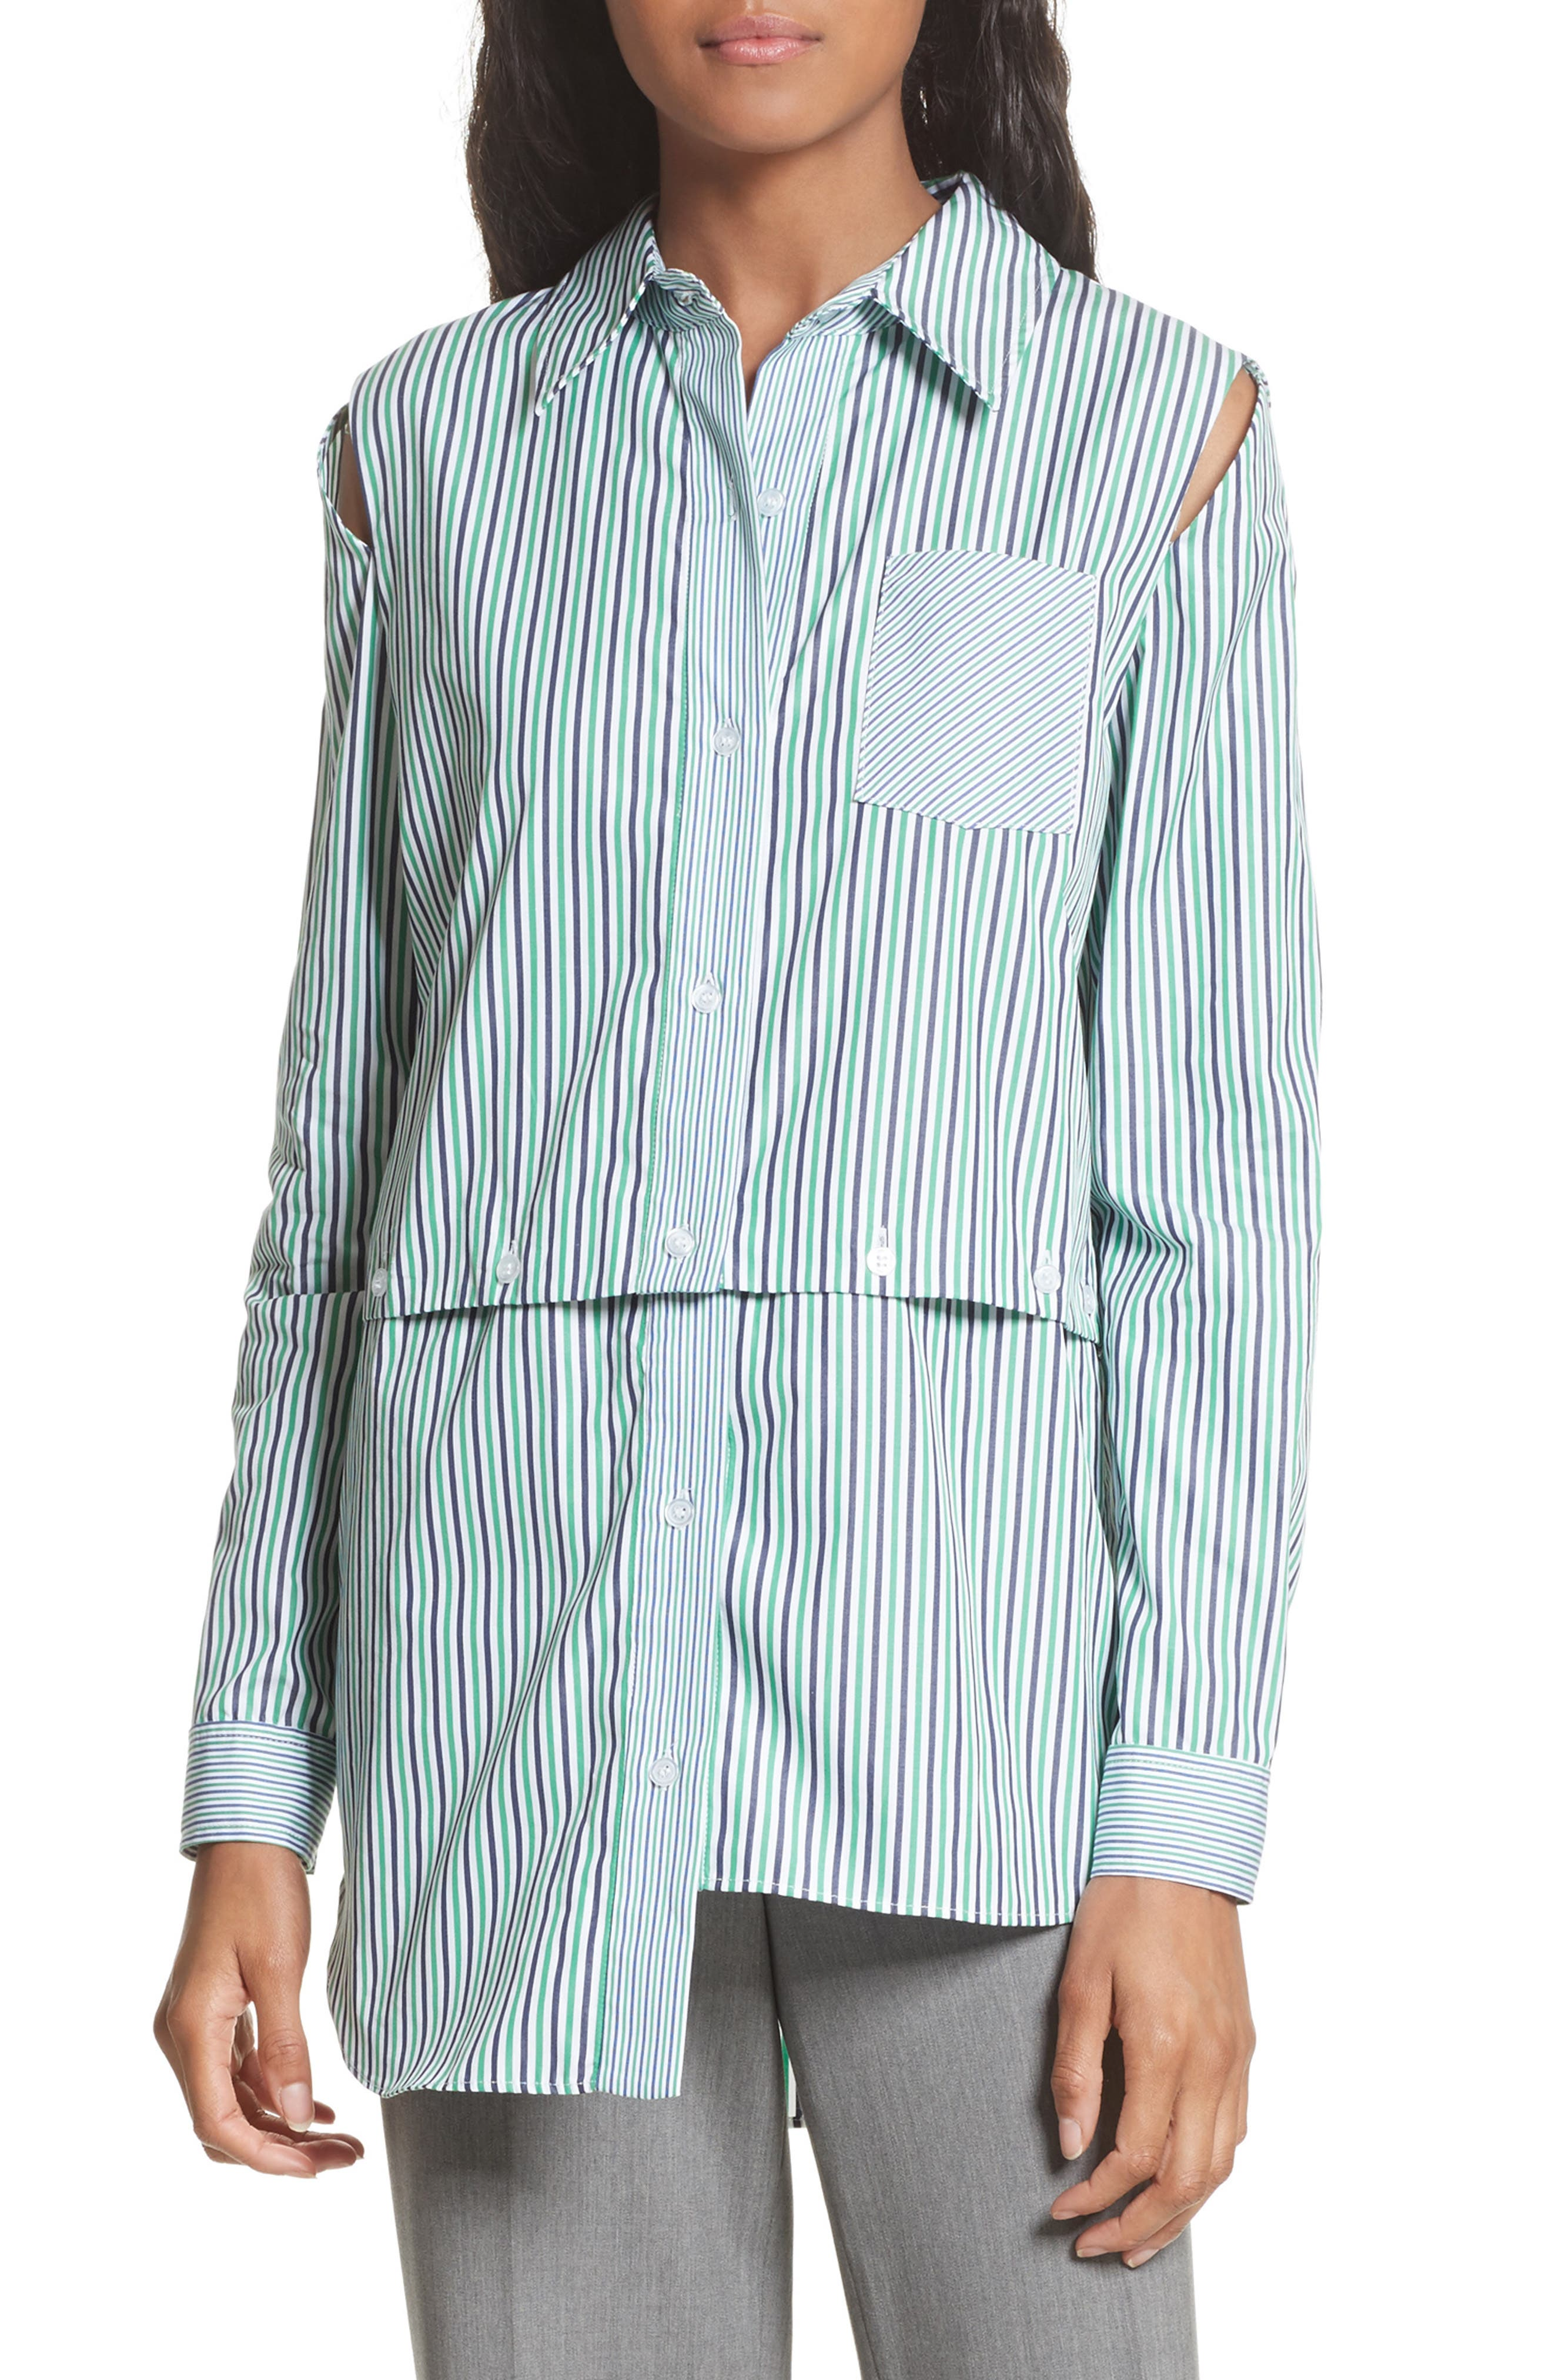 Main Image - Milly Fractured Stripe Shirt